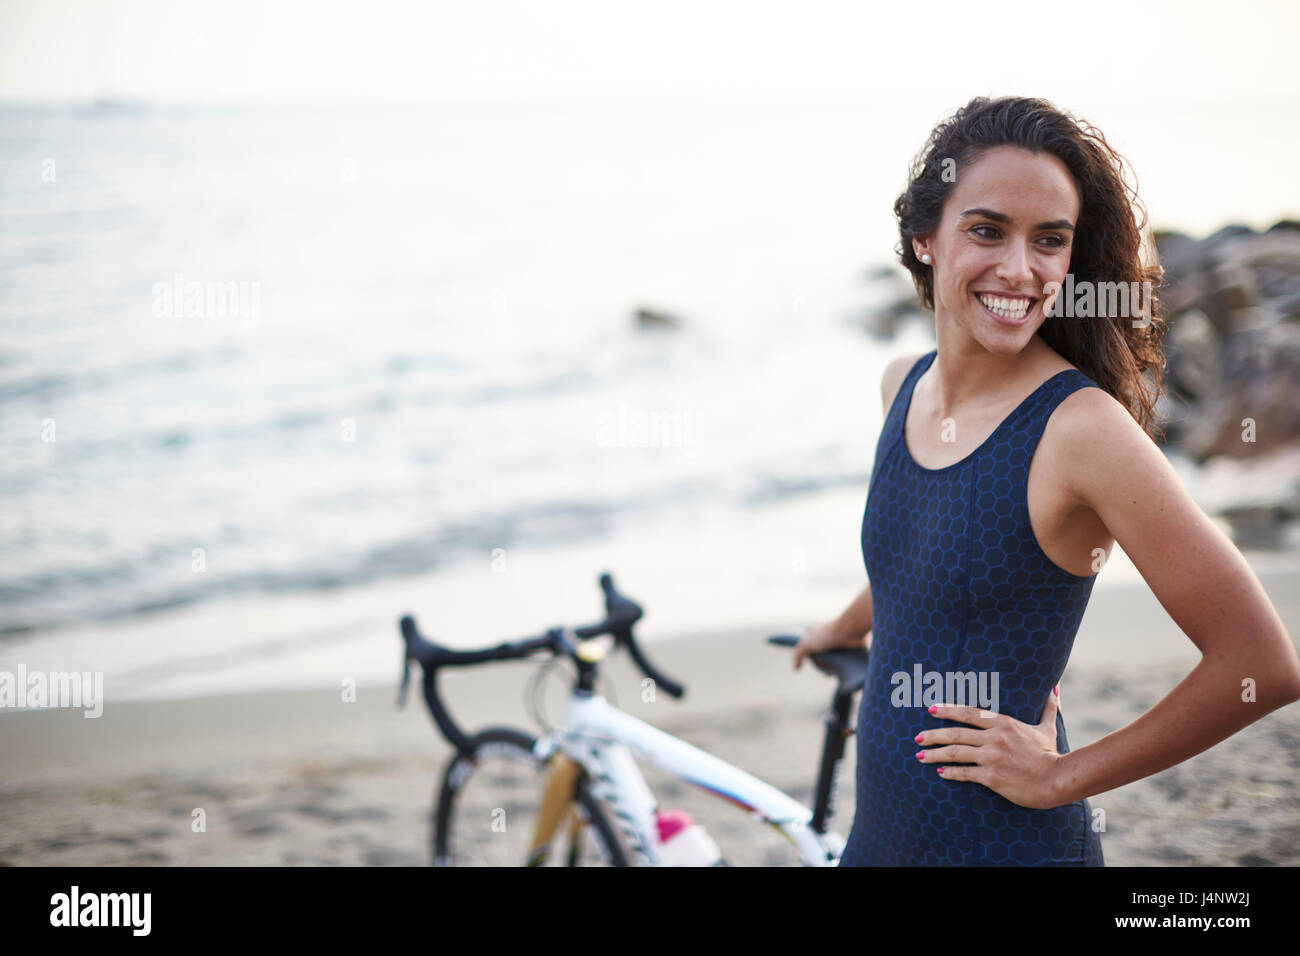 A female triathlete on the beach wearing her triathlon suit - Stock Image